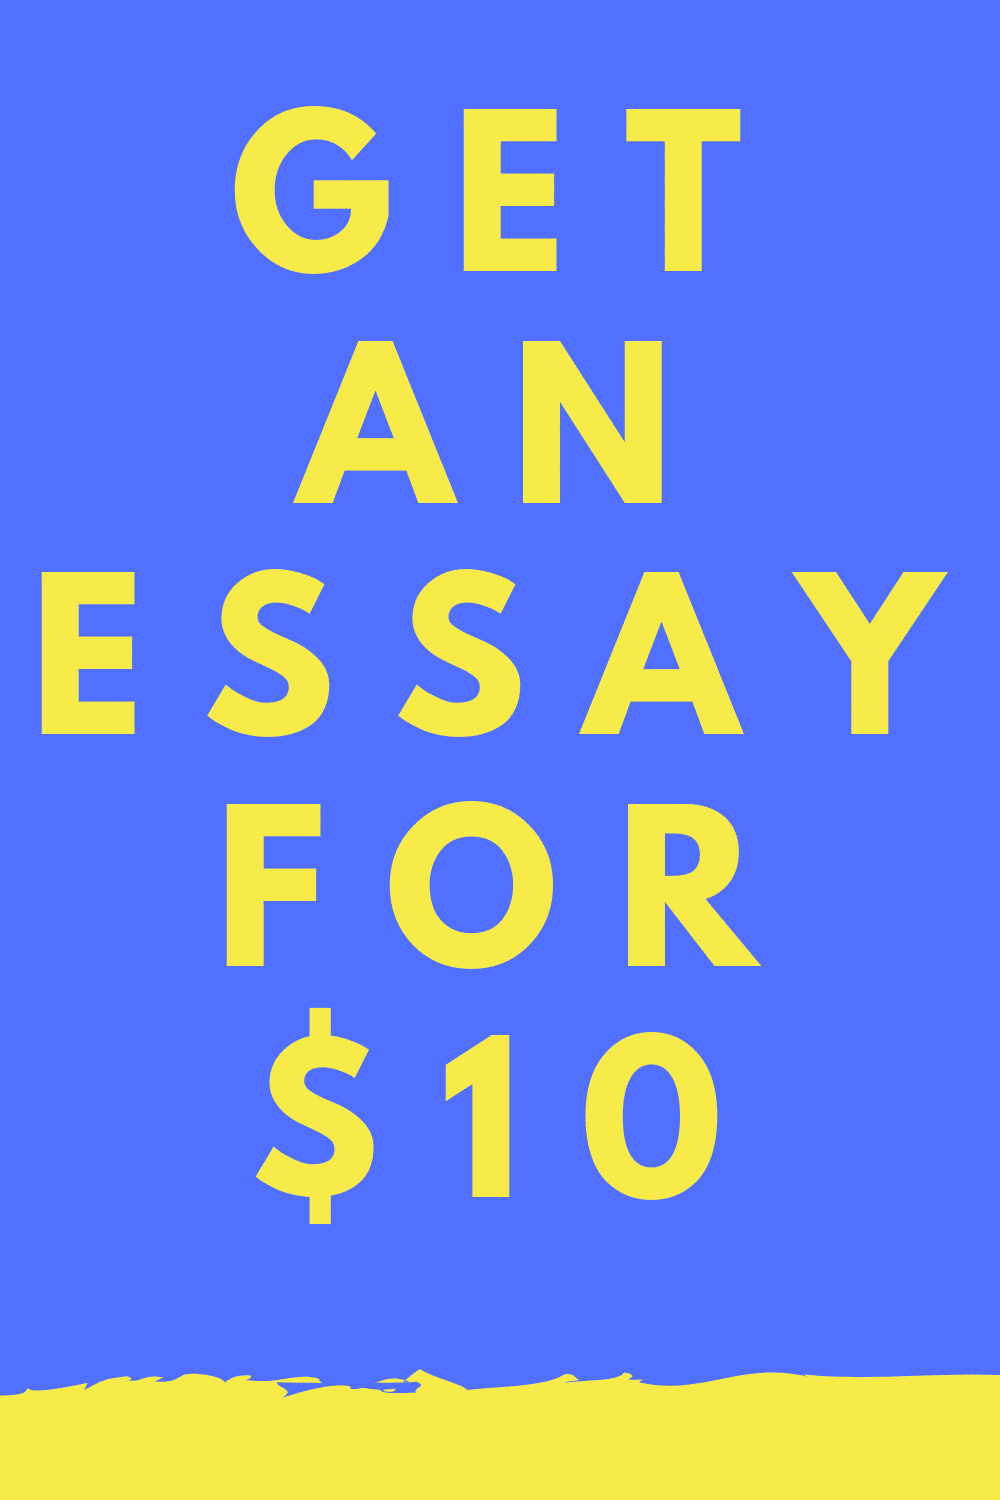 Buy college essays online at Content Clerks